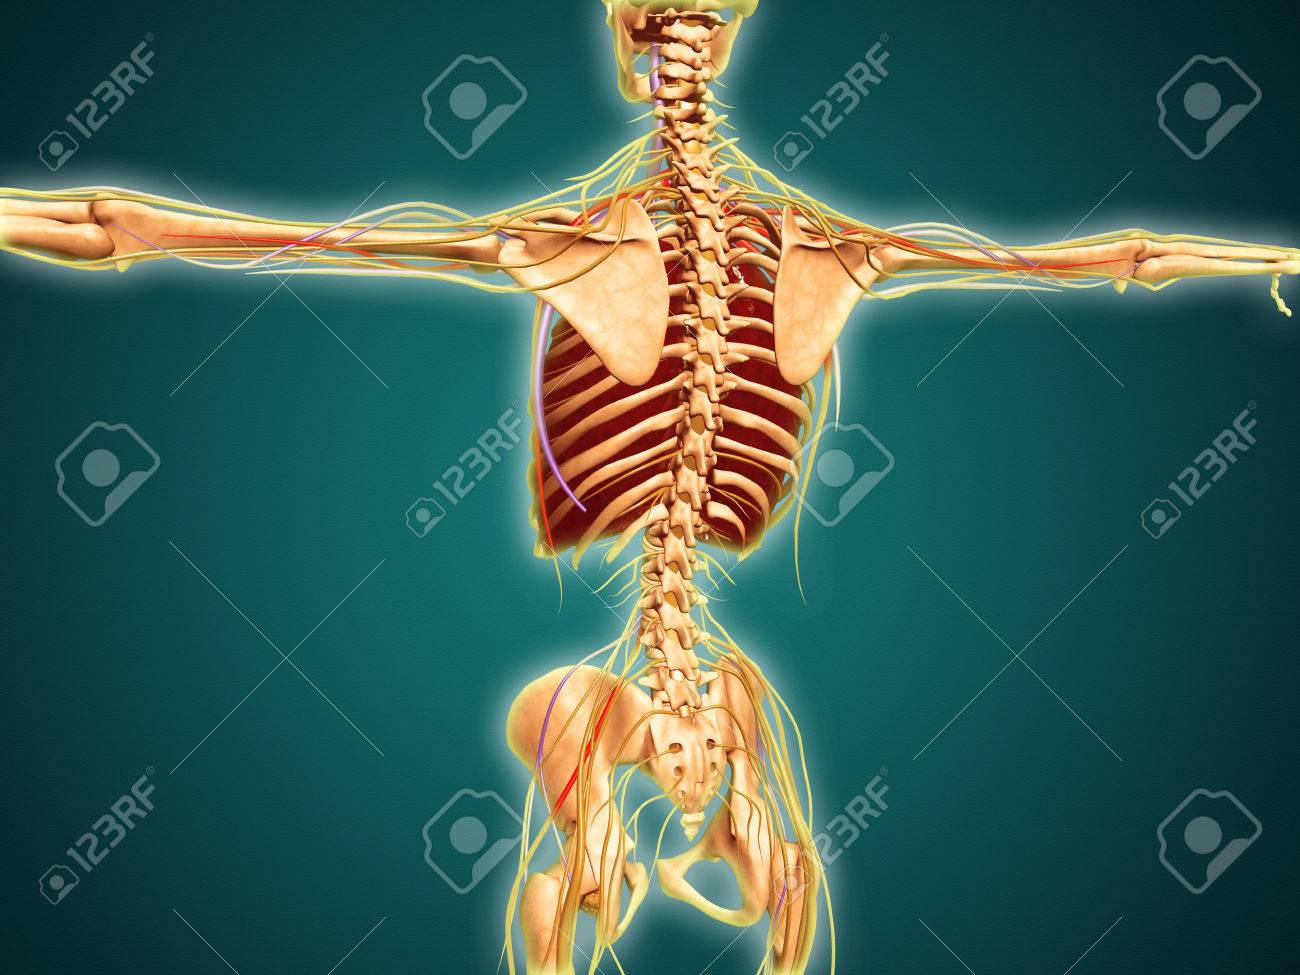 Back View Of Human Skeleton With Nervous System Arteries And